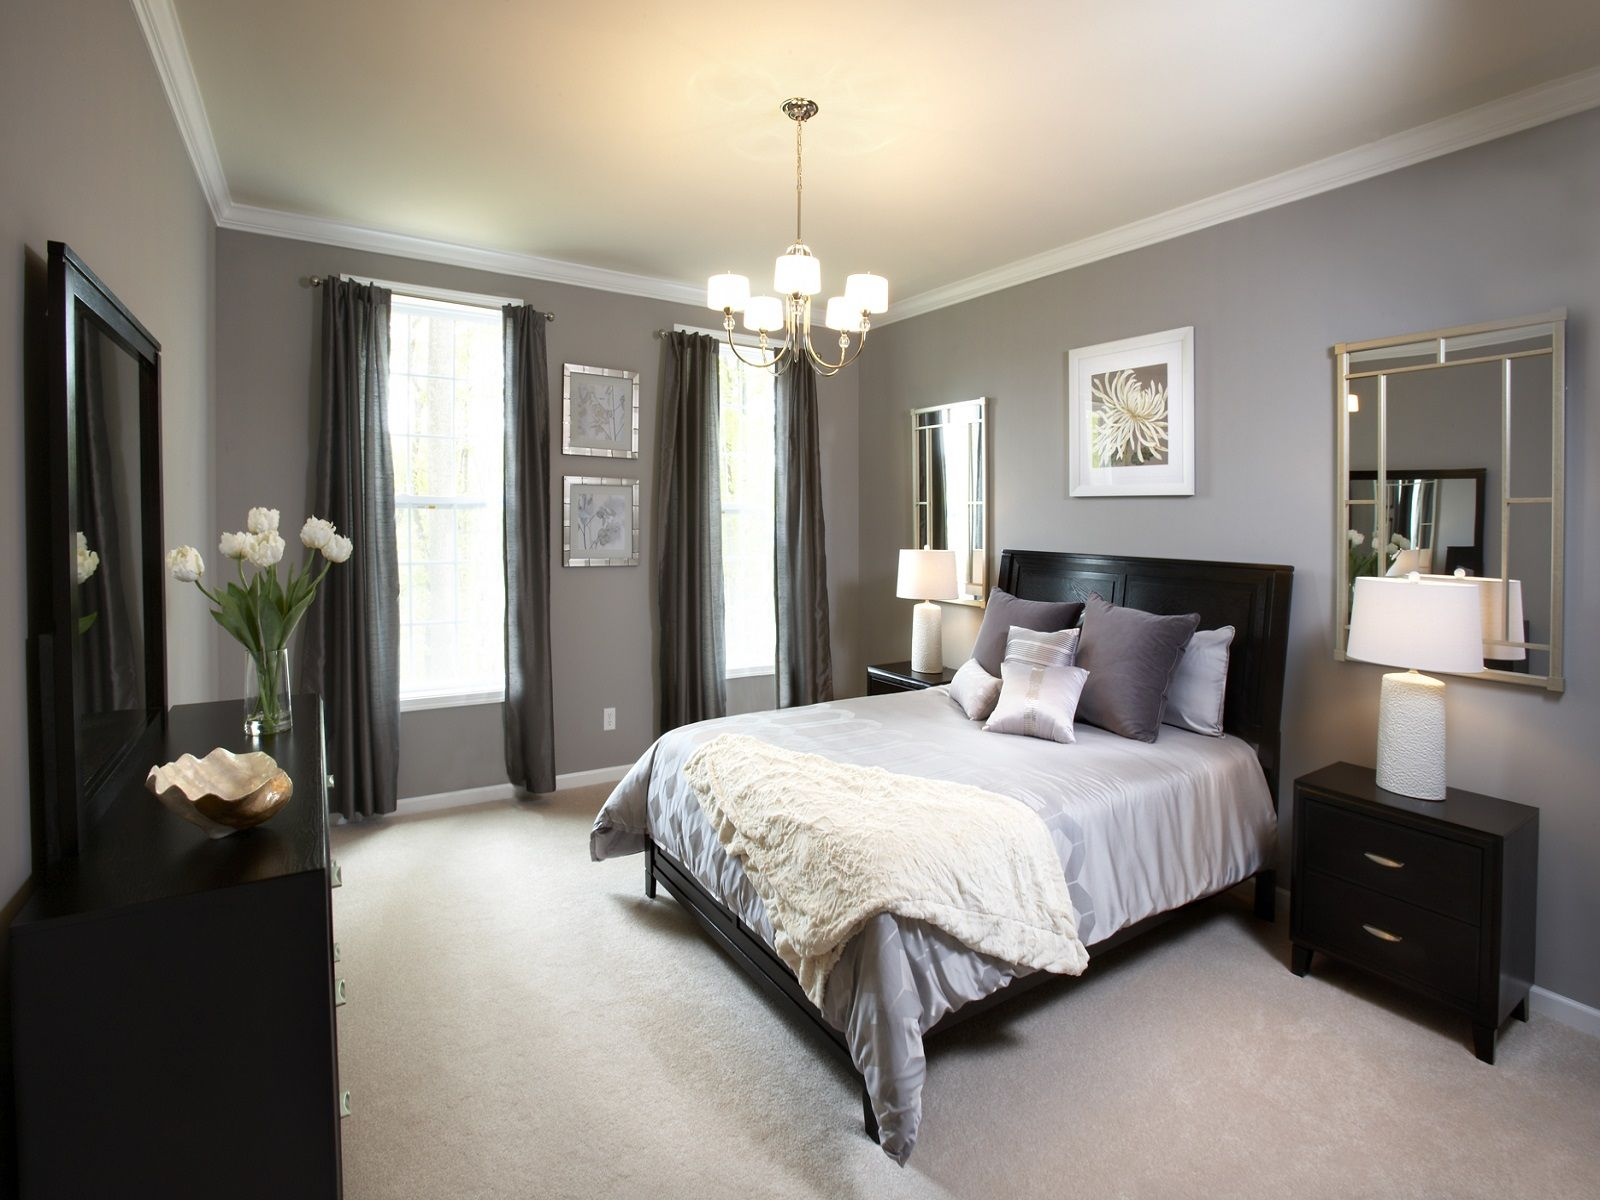 Awesome Bedroom Shade Chandelier Over White Bedding Ideas With Black Wooden Base Bed Frames As Well Gray Wall Painted In Contemporary Master